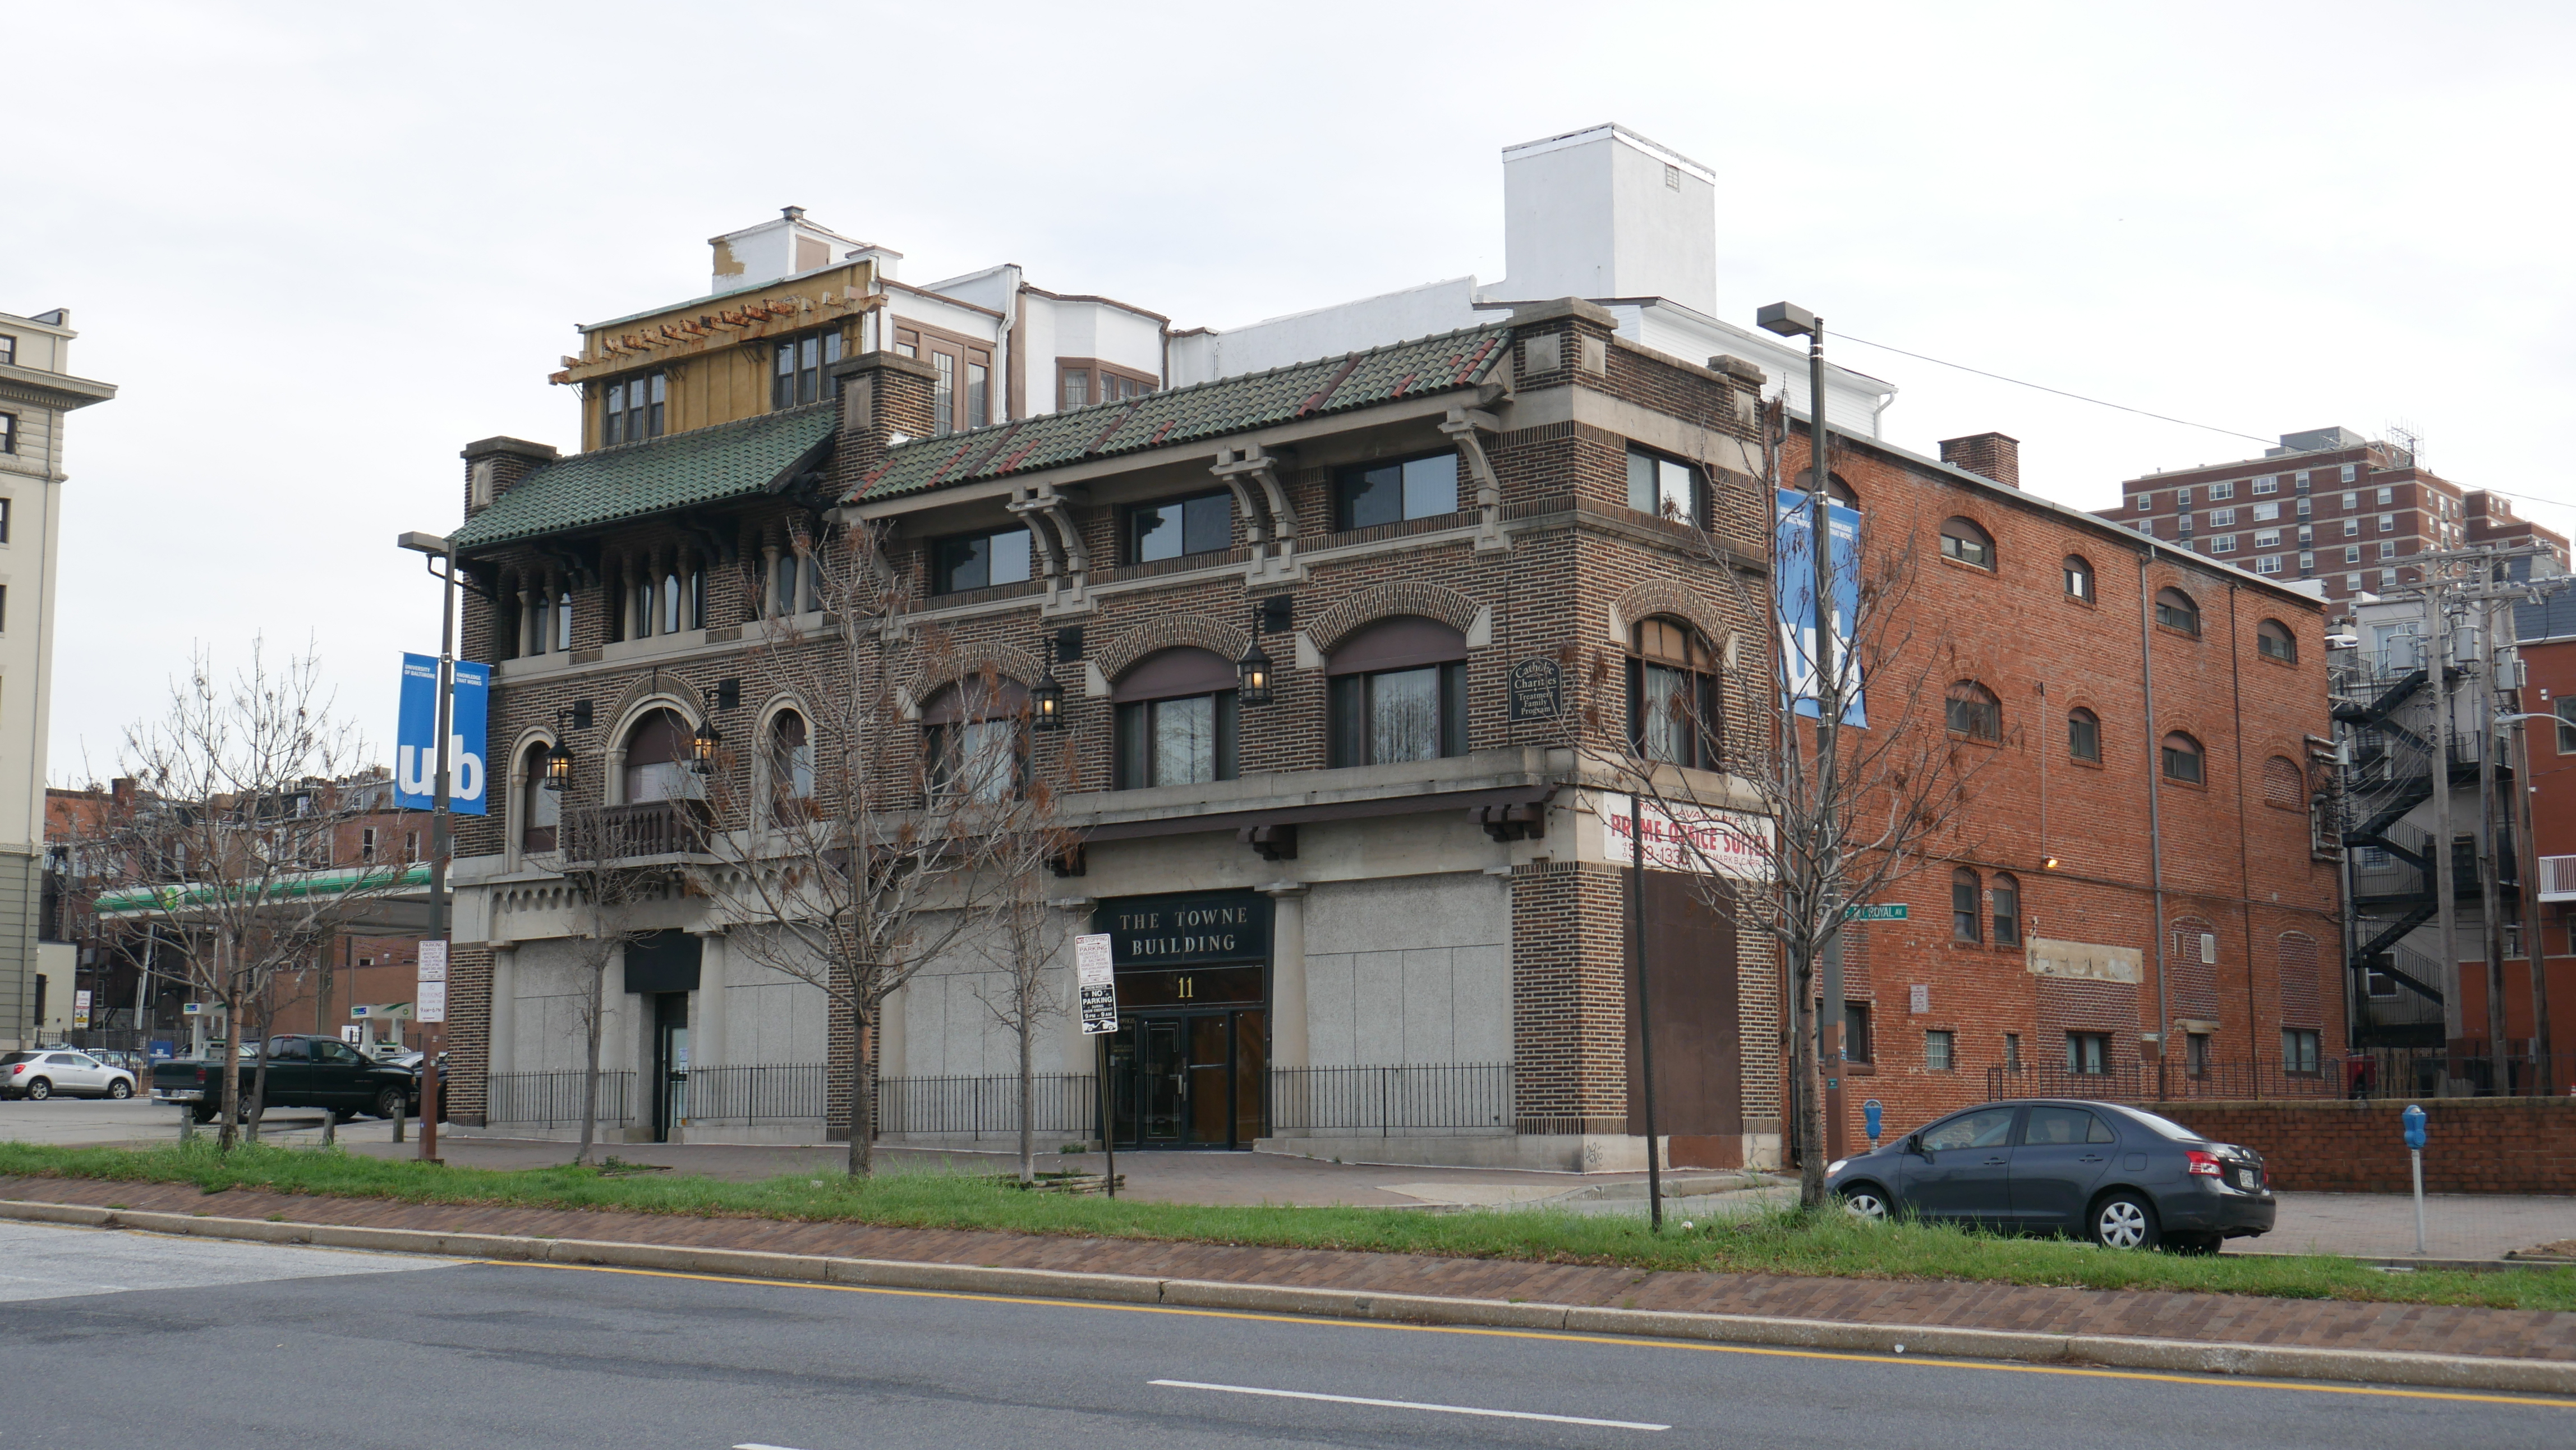 Zell Motor Car Company Showroom, 11 E. Mount Royal Avenue, Baltimore, MD, Architecture, Automobile dealership, Baltimore, Building, HQ Photo